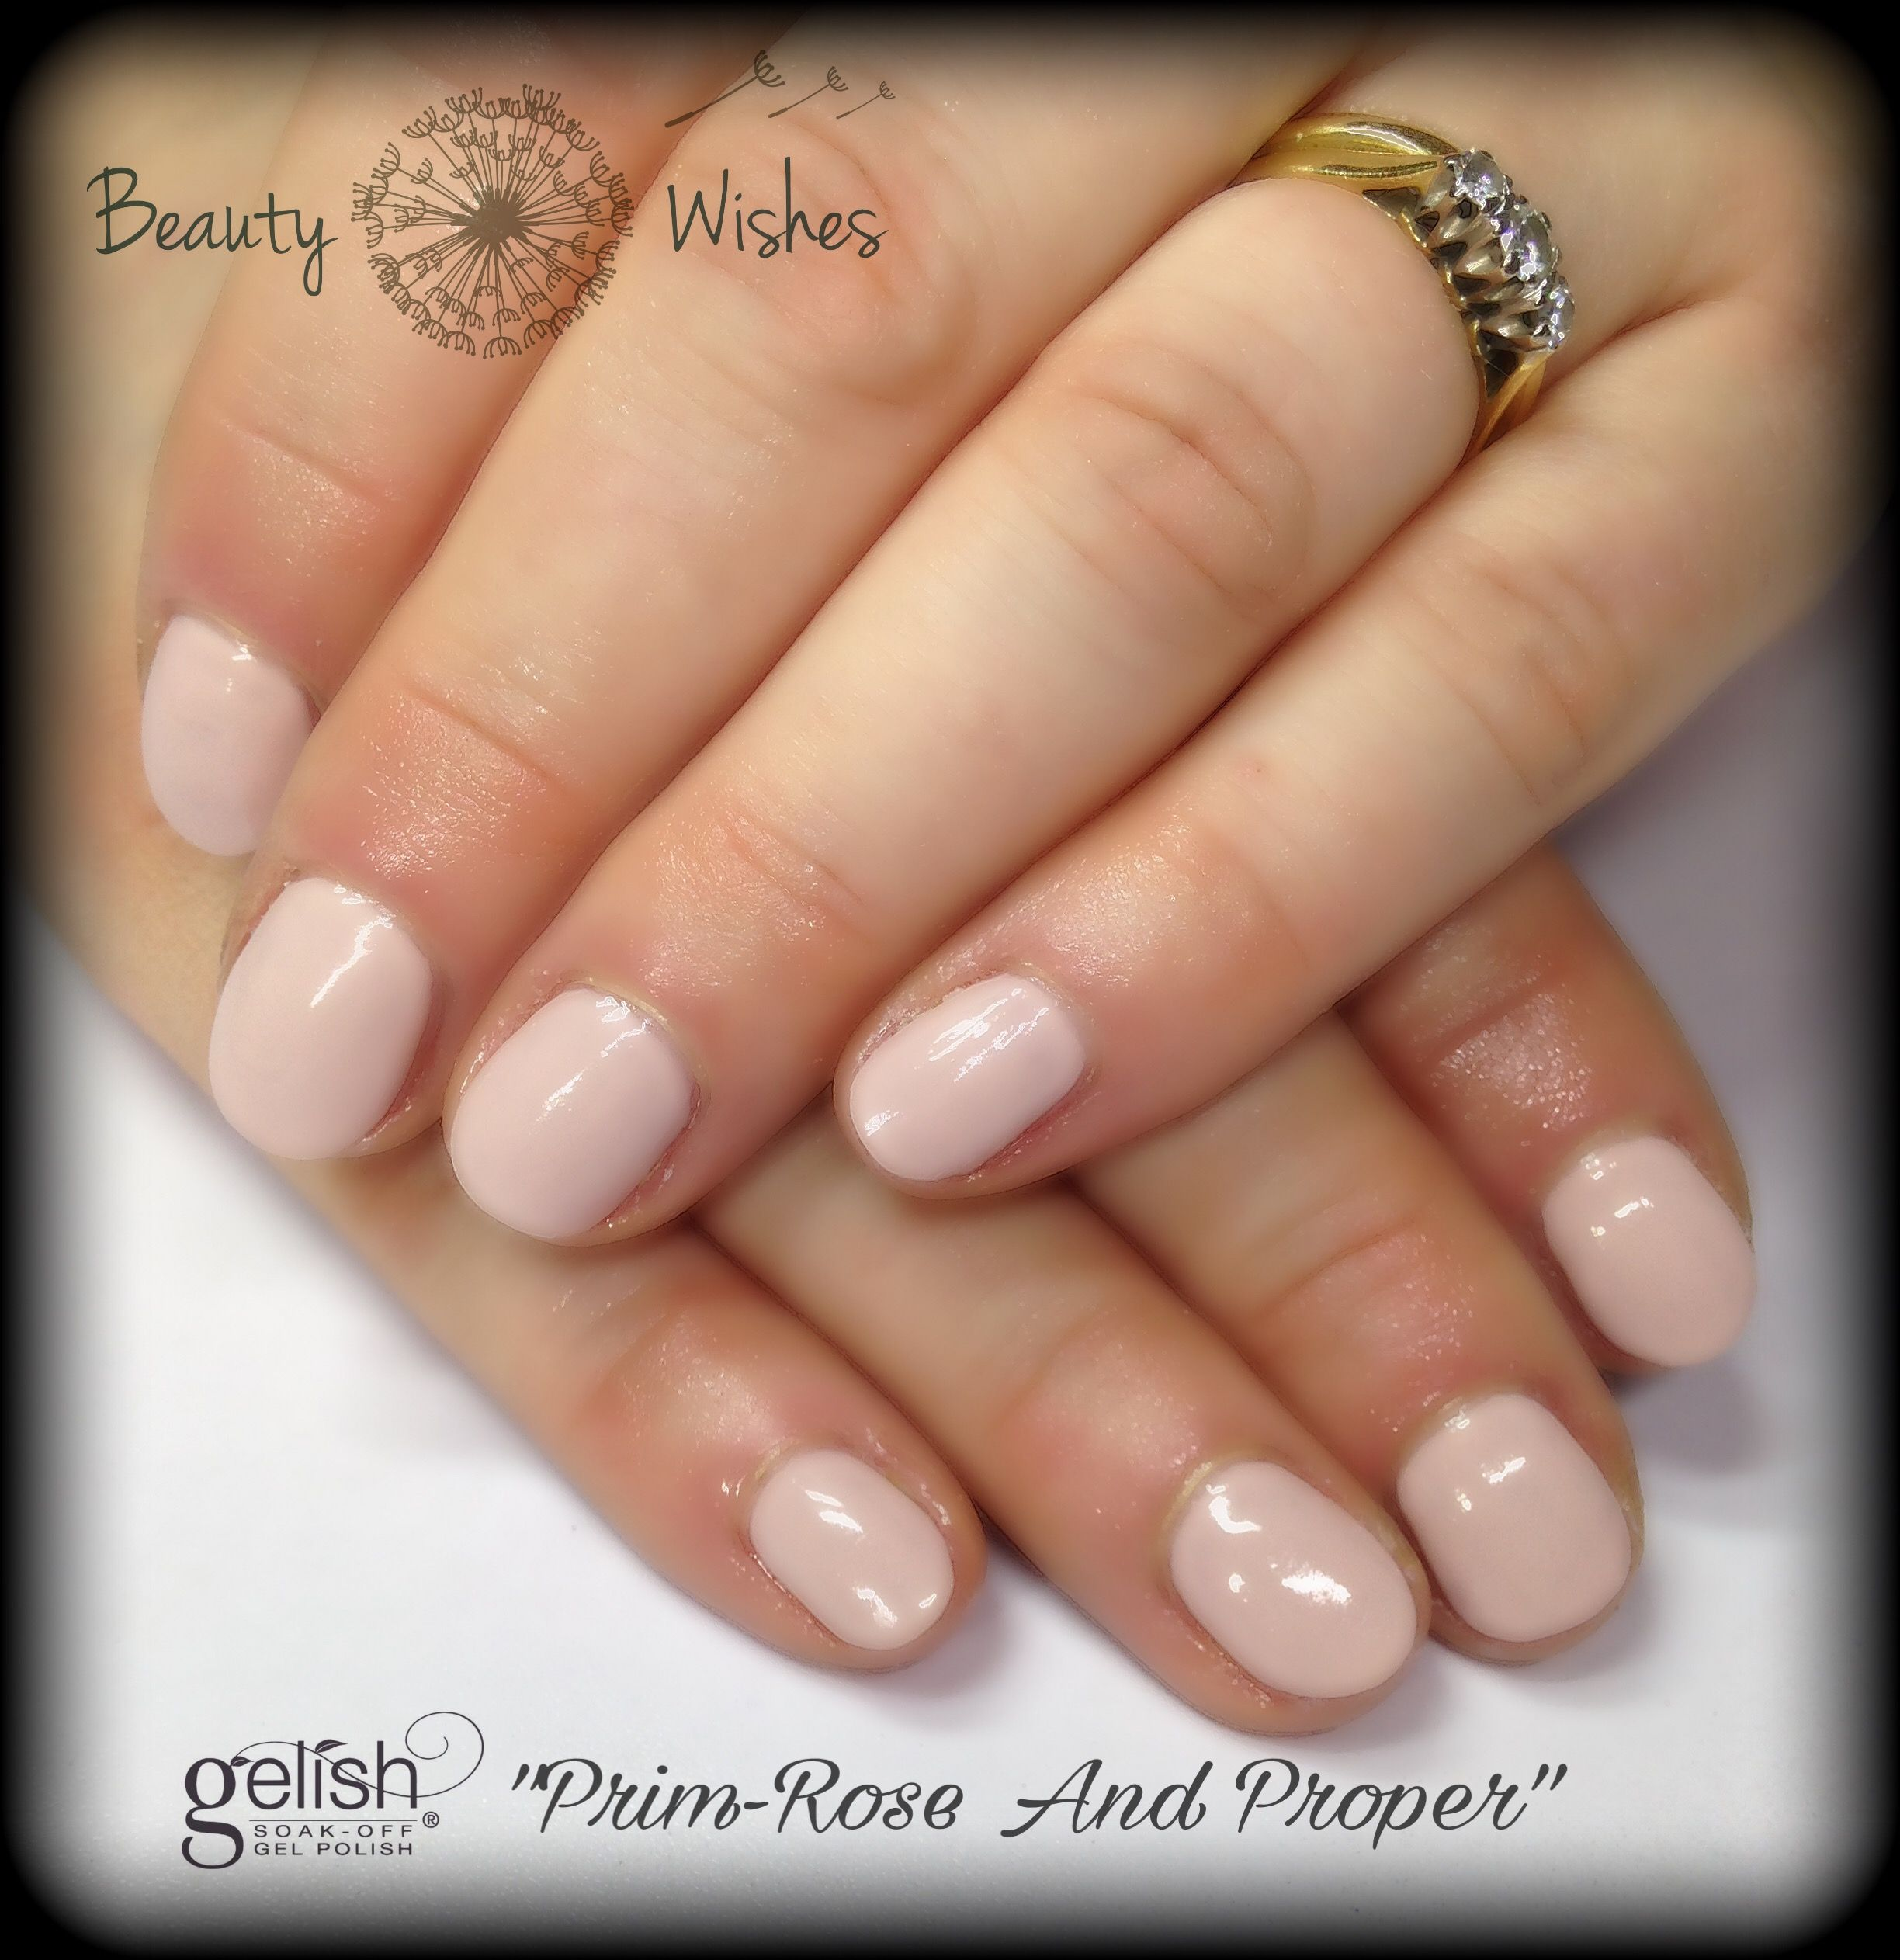 """Nail Colors Youtube: Gelish """"PrimRose And Proper"""" At Www.beautywishes.co.uk"""